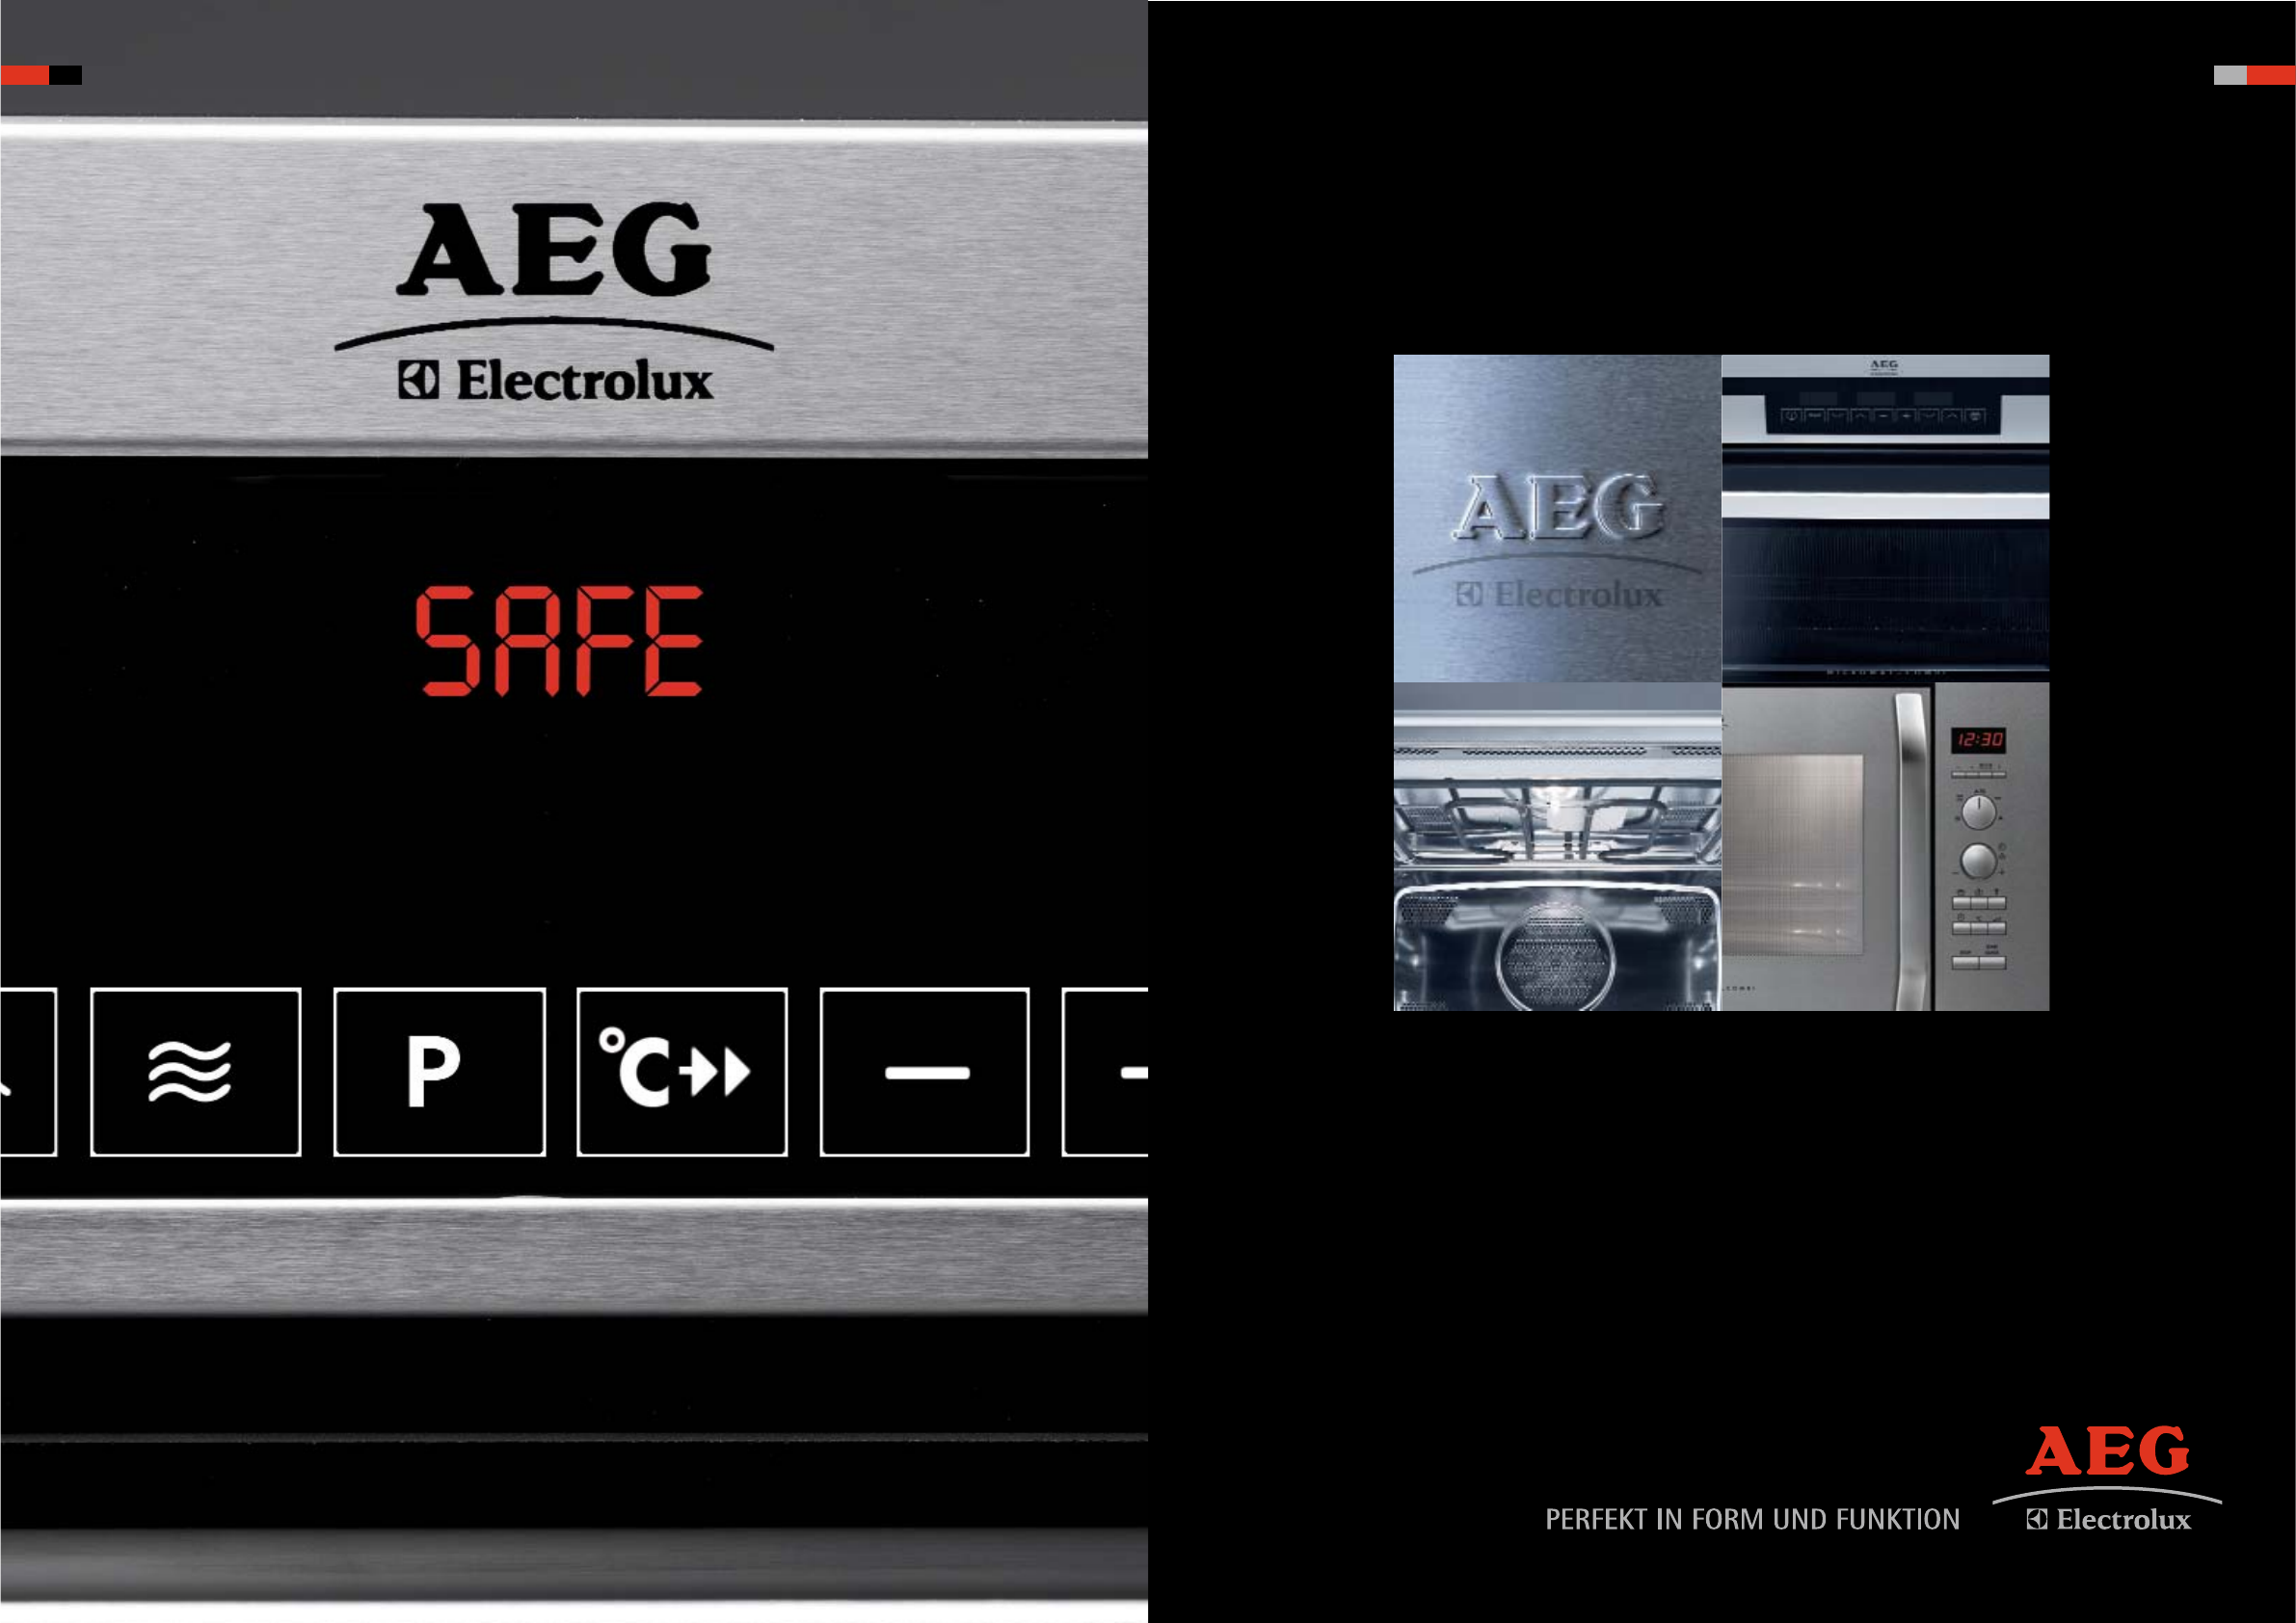 aeg microwave oven 37 user guide manualsonline com rh kitchen manualsonline com User Manual Template User Guide Icon